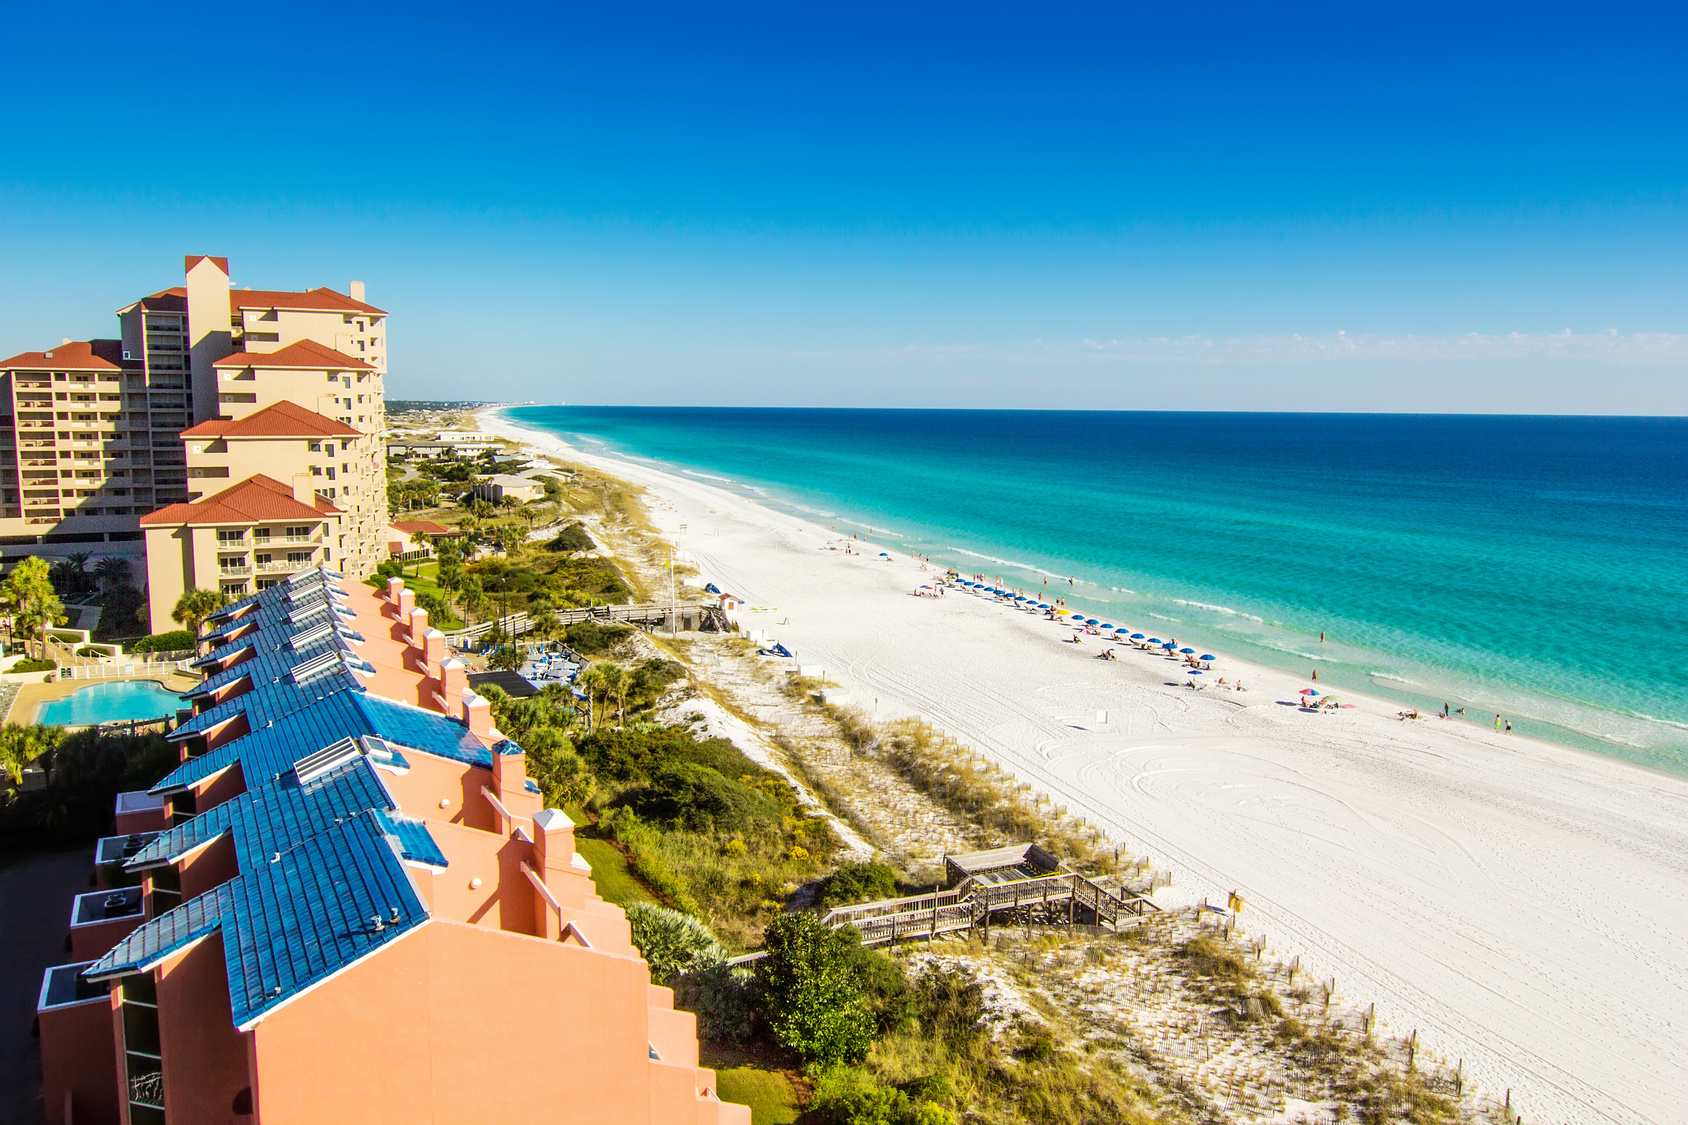 Condominium Management on Panama City Beach, Florida